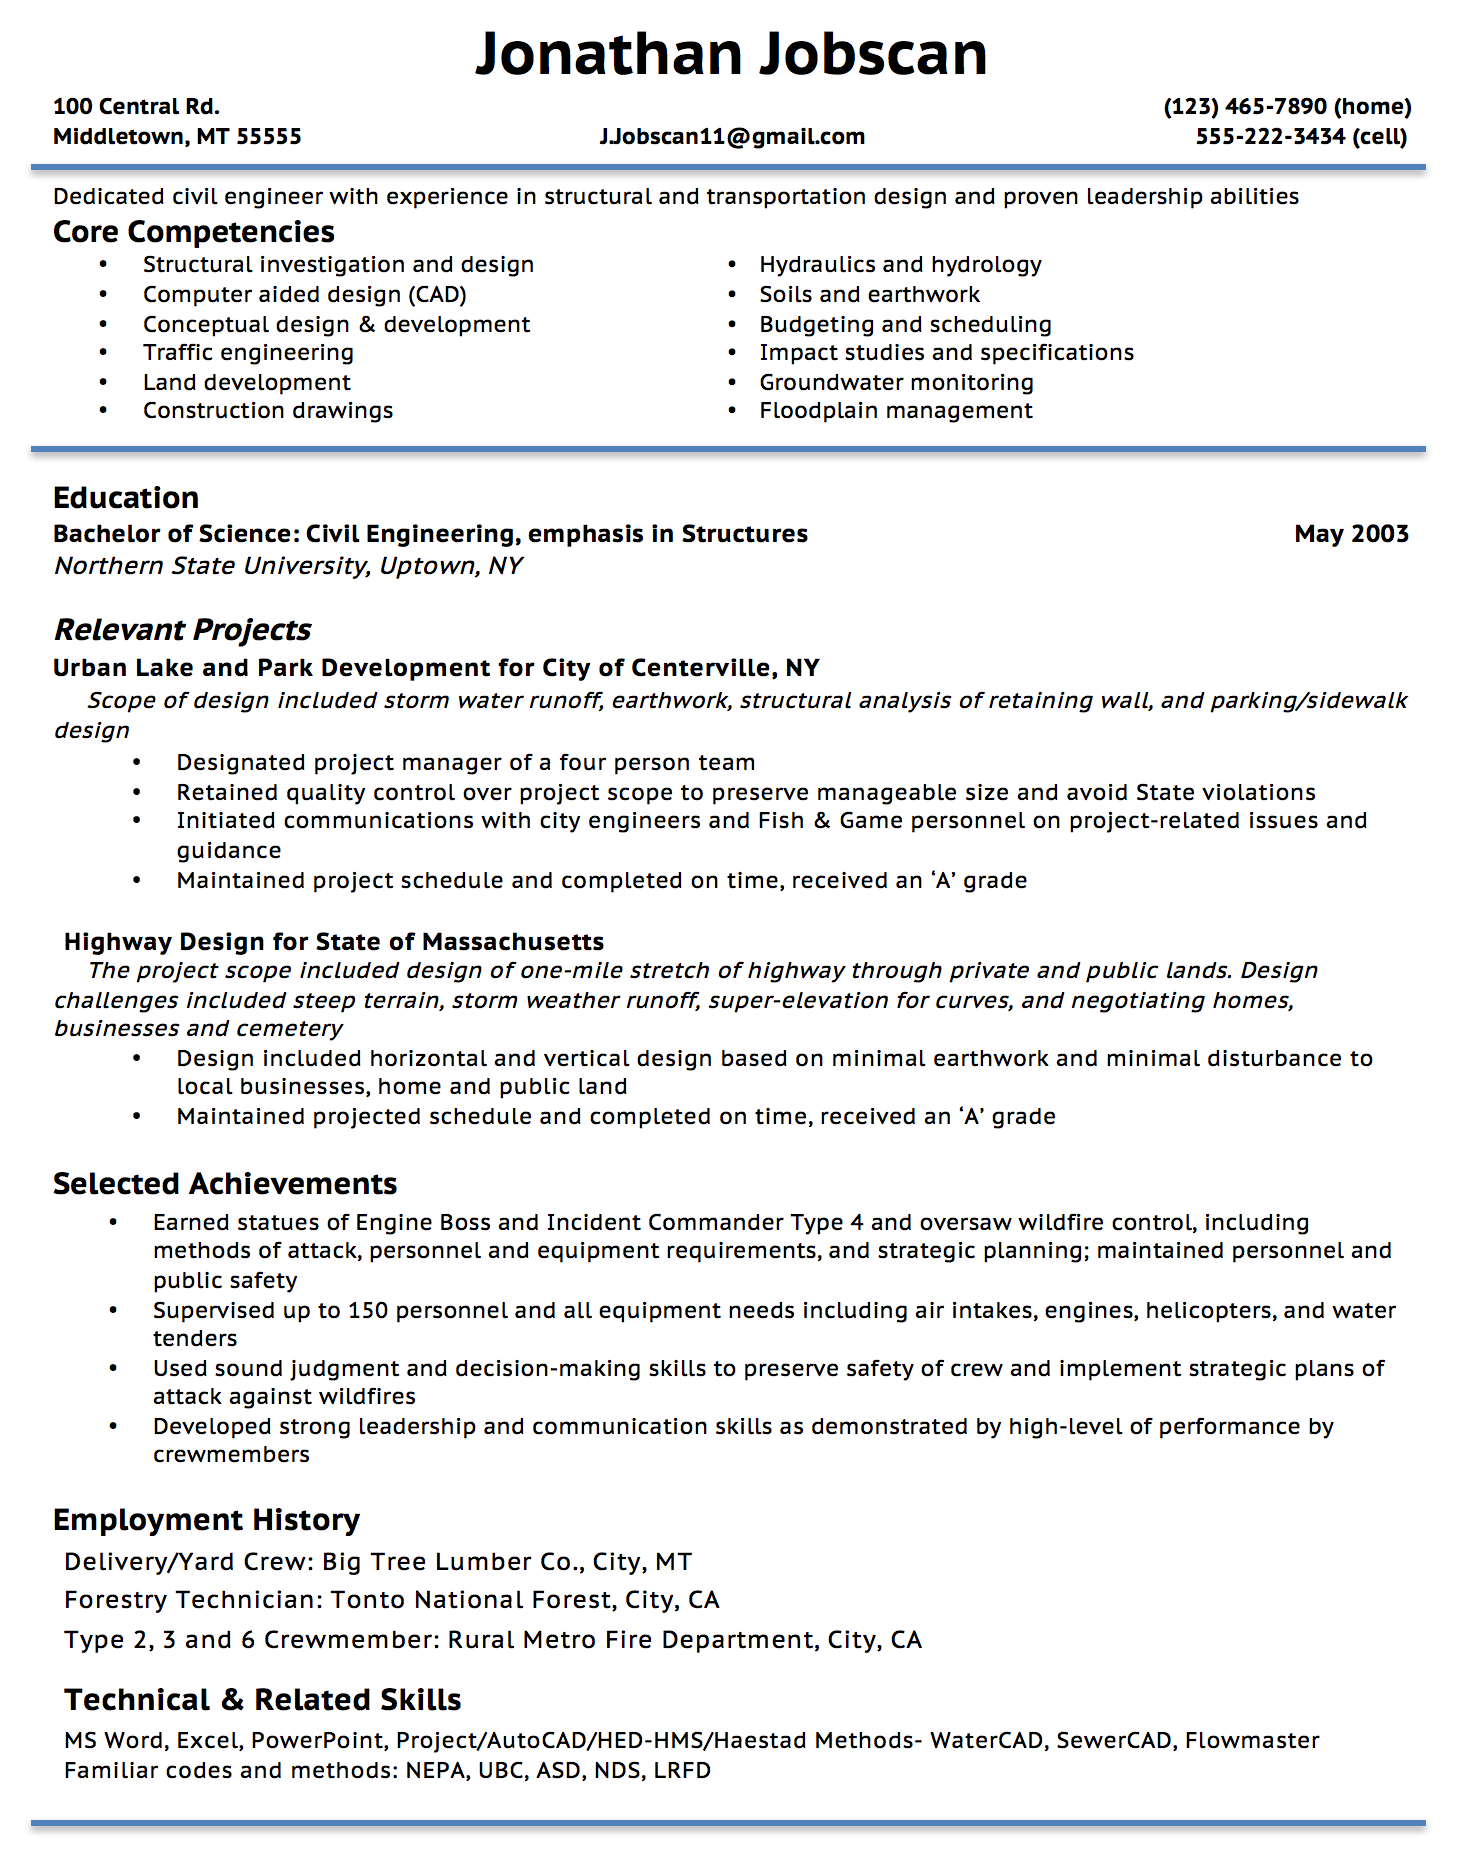 Picnictoimpeachus  Fascinating Resume Writing Guide  Jobscan With Inspiring Example Of A Functional Resume Format With Enchanting References Available Upon Request Resume Also Undergraduate Student Resume In Addition Resume With No Education And Good Profile For Resume As Well As Pharmacy Technician Resume Template Additionally Resume For Student With No Experience From Jobscanco With Picnictoimpeachus  Inspiring Resume Writing Guide  Jobscan With Enchanting Example Of A Functional Resume Format And Fascinating References Available Upon Request Resume Also Undergraduate Student Resume In Addition Resume With No Education From Jobscanco